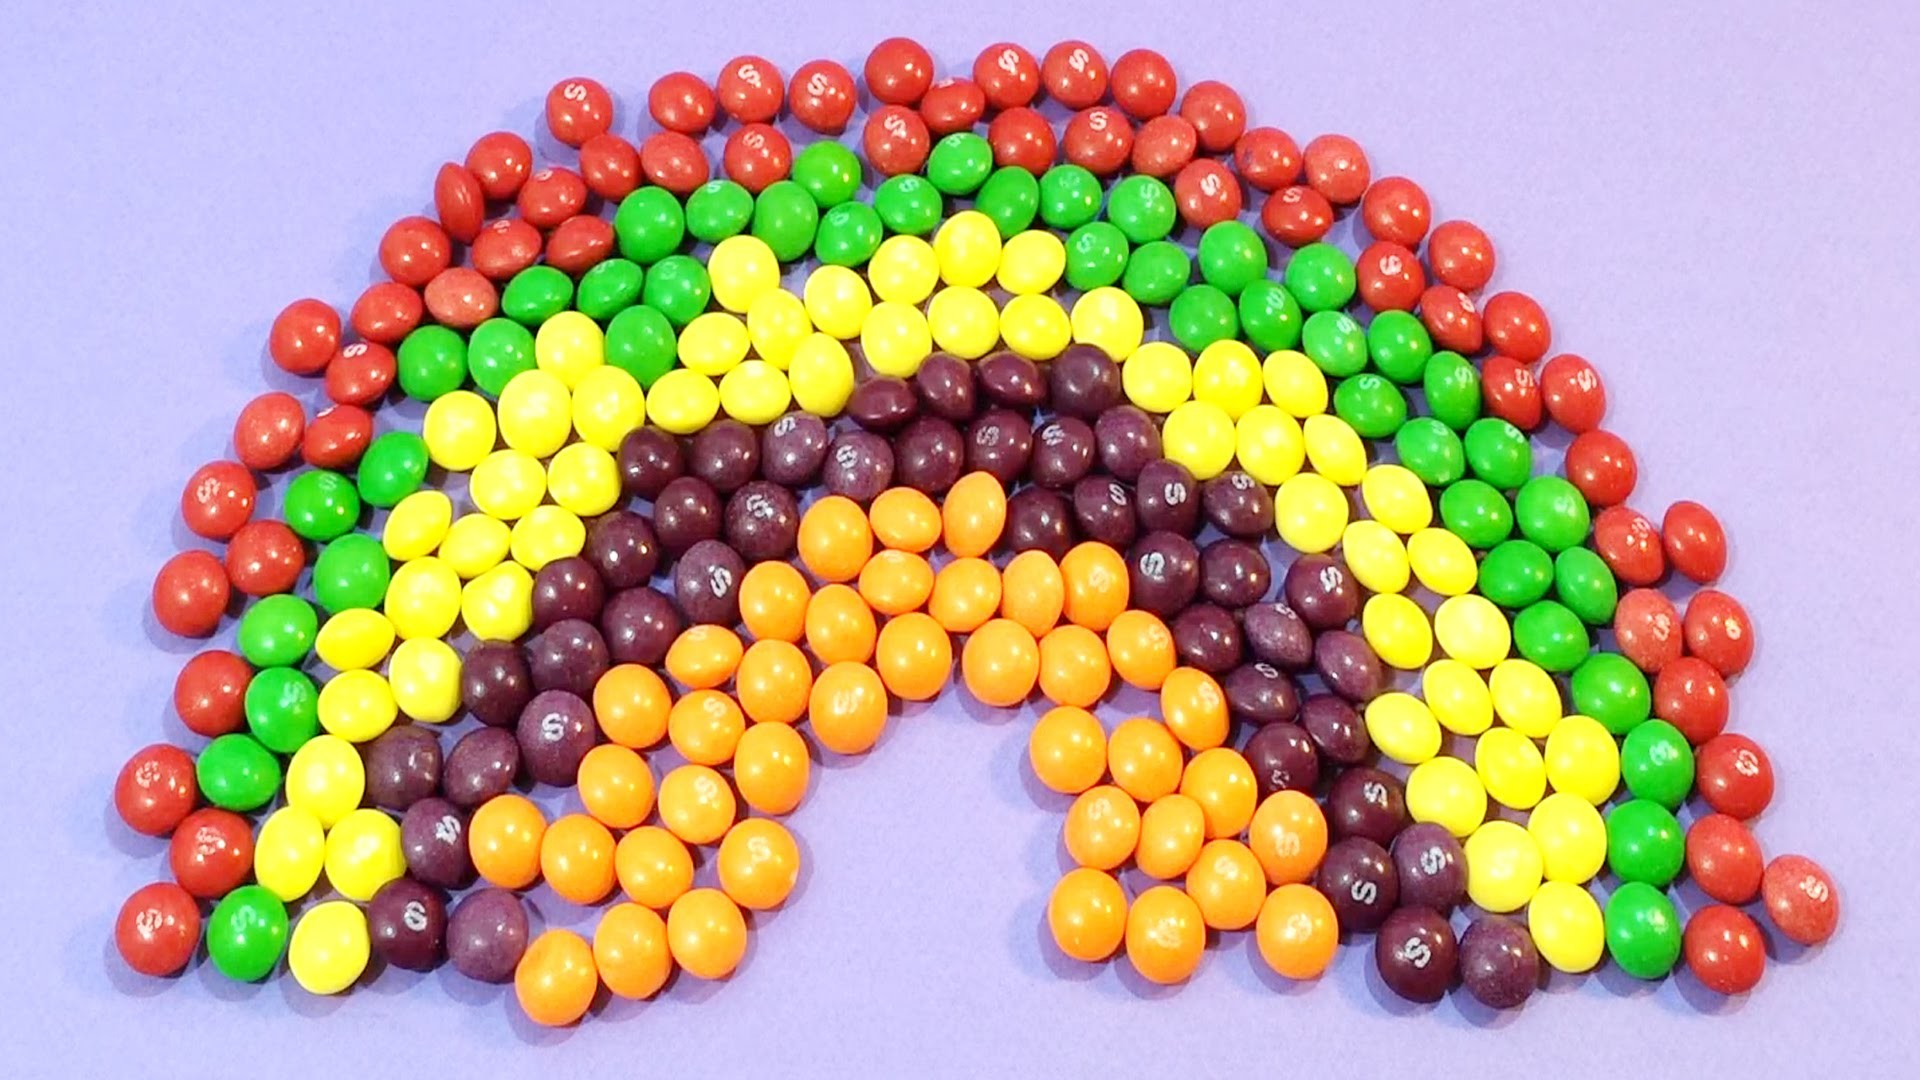 New Learn Colours with Skittles Candy Rainbow and Surprise Balls! Lesson 4